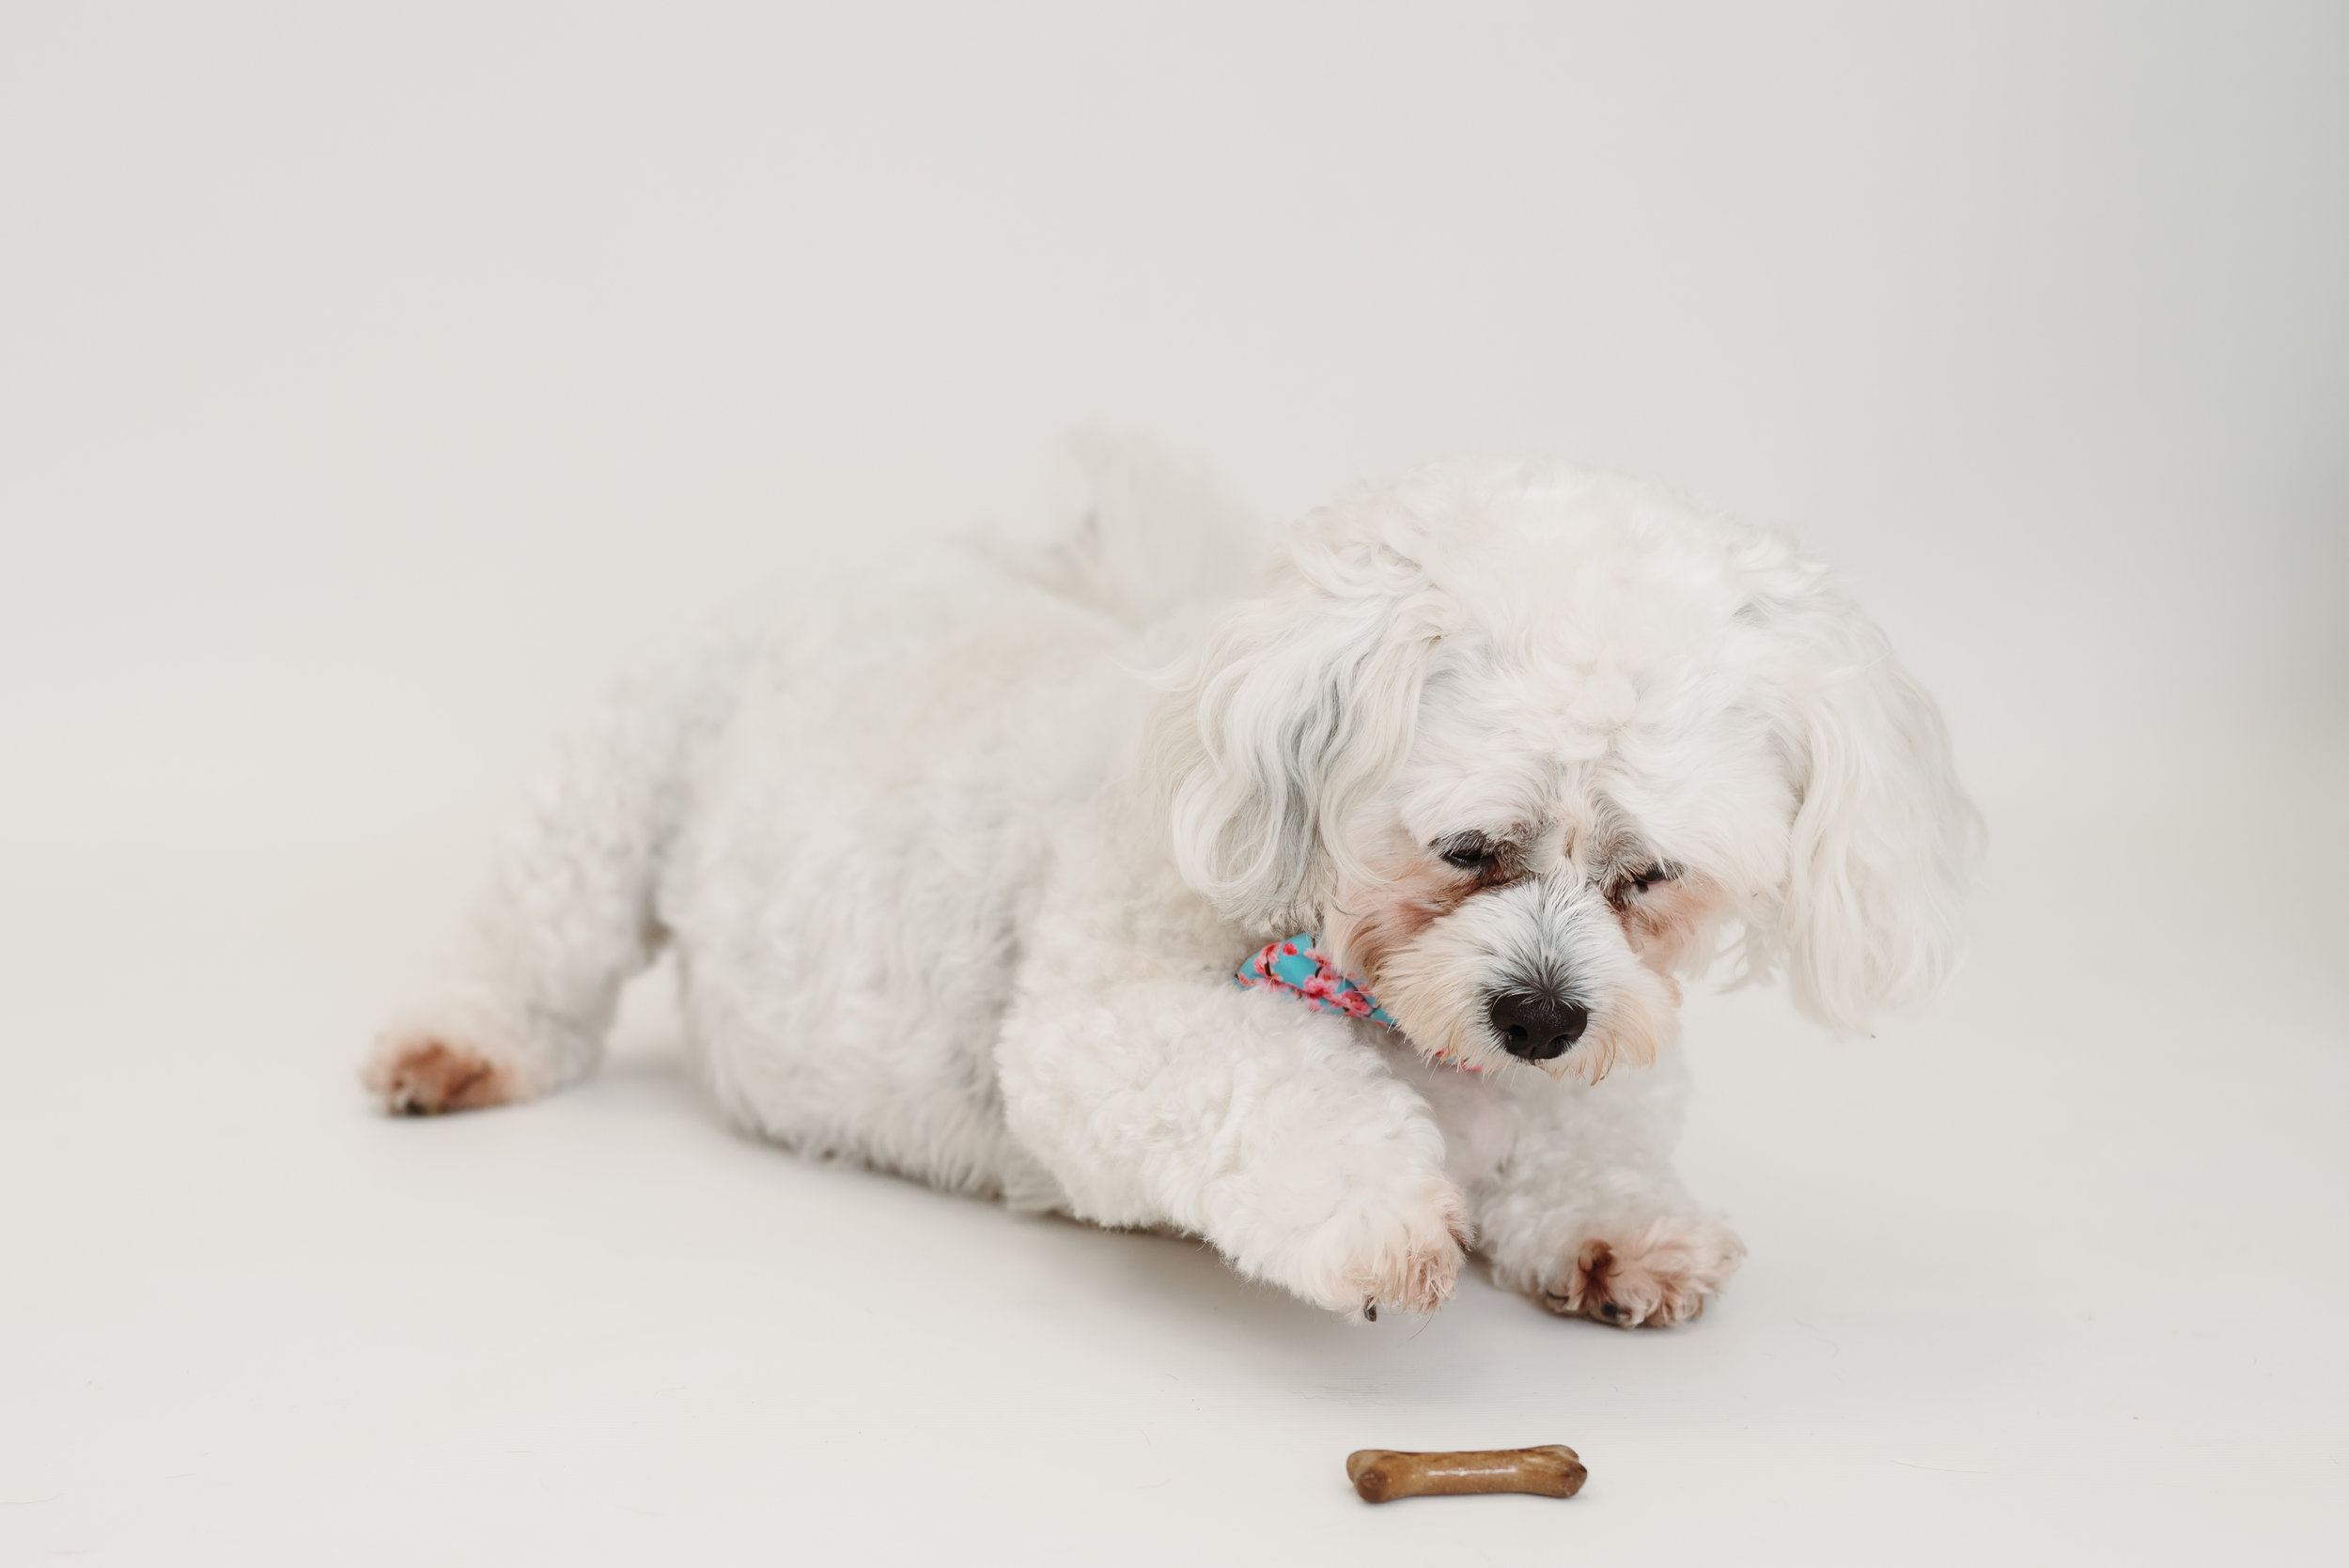 Toy poodle photo shoot